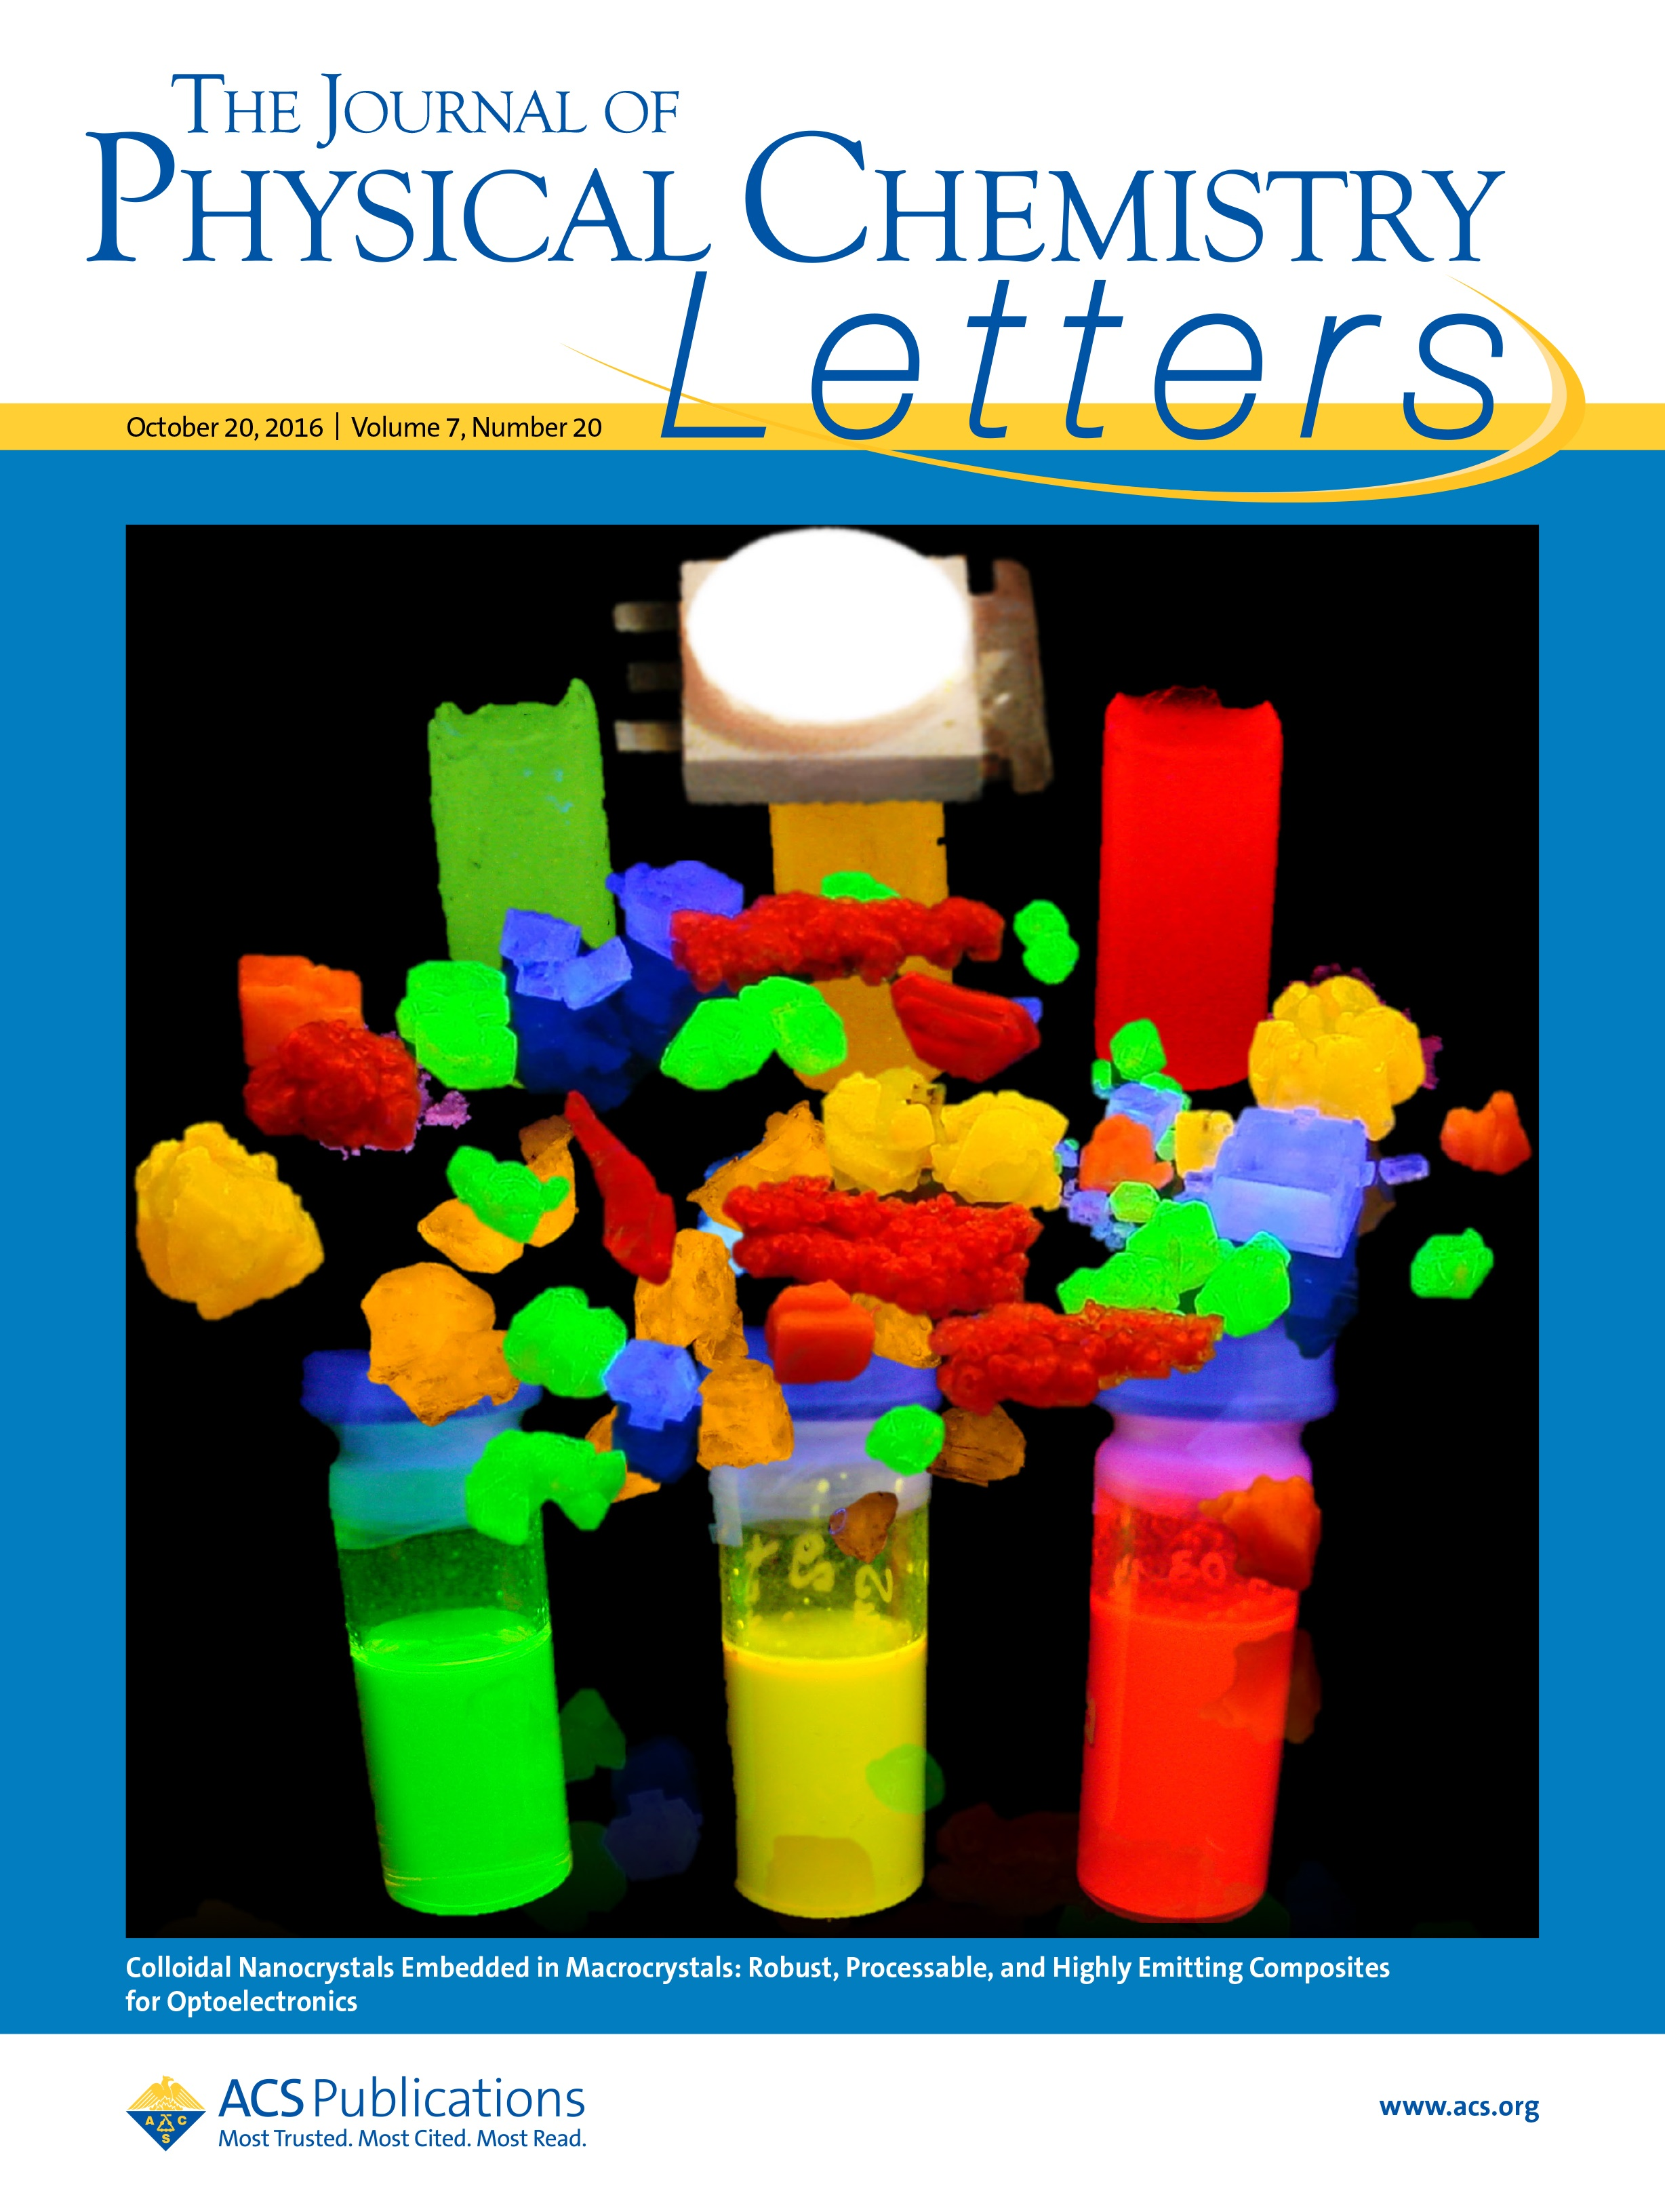 Cover letter american chemical society